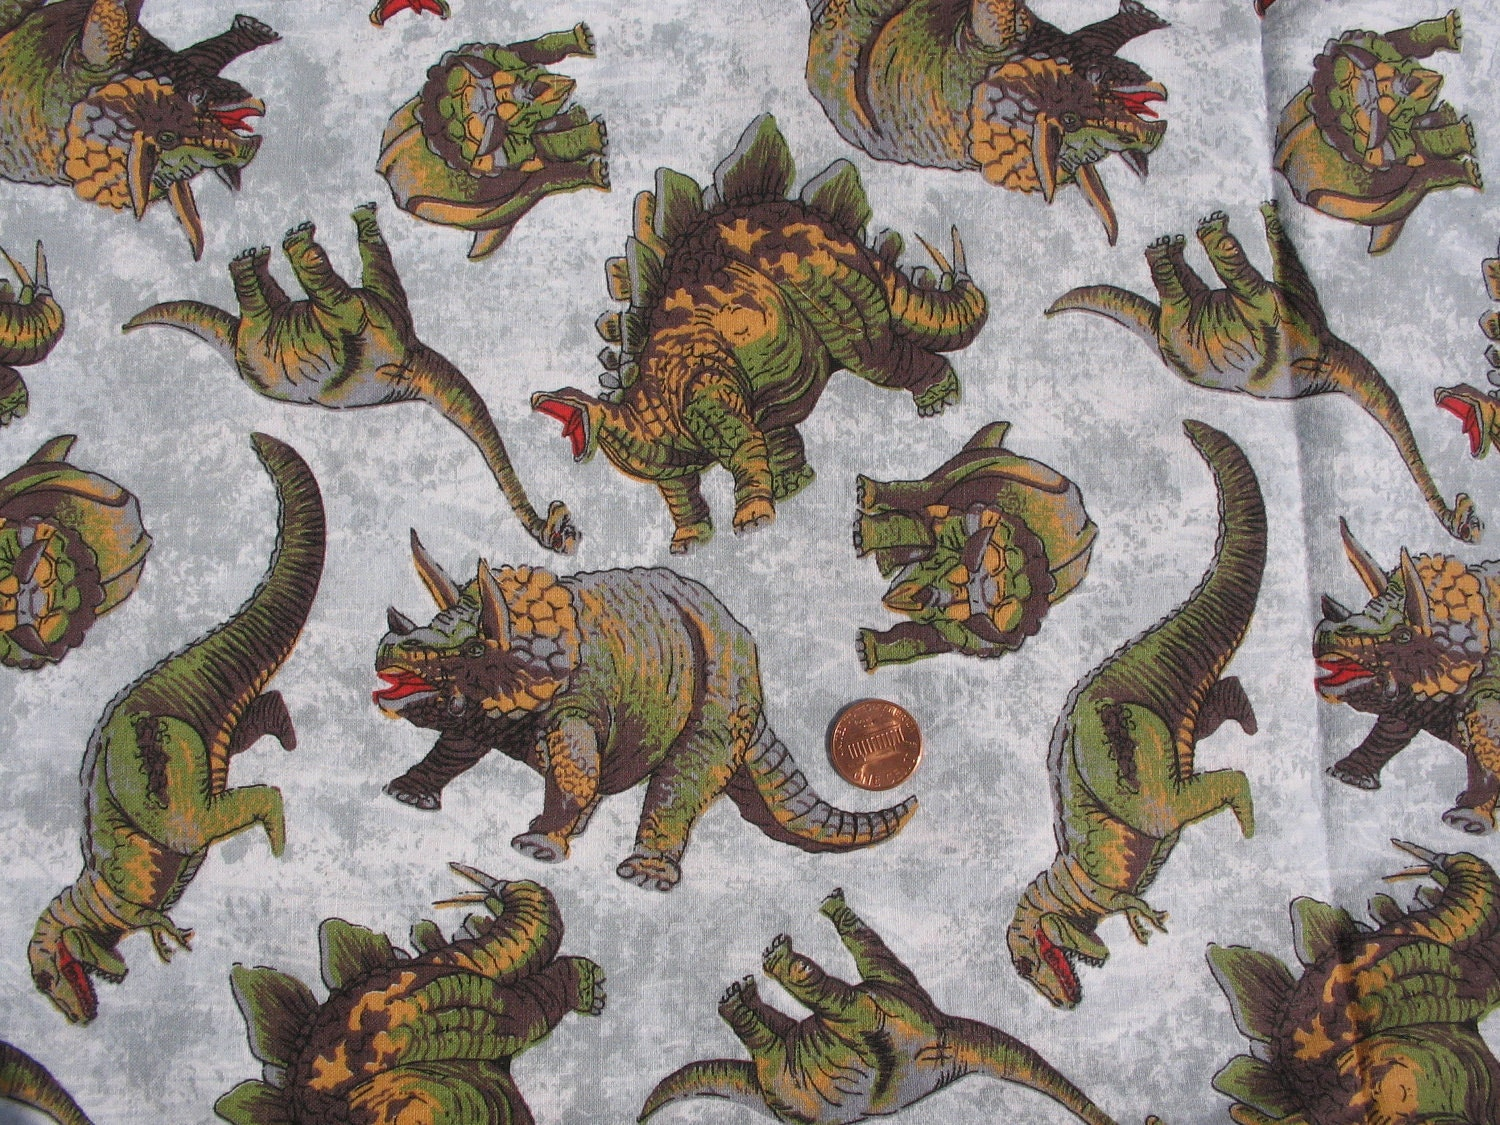 vintage animal print half yard 1980s dinosaur fabric by